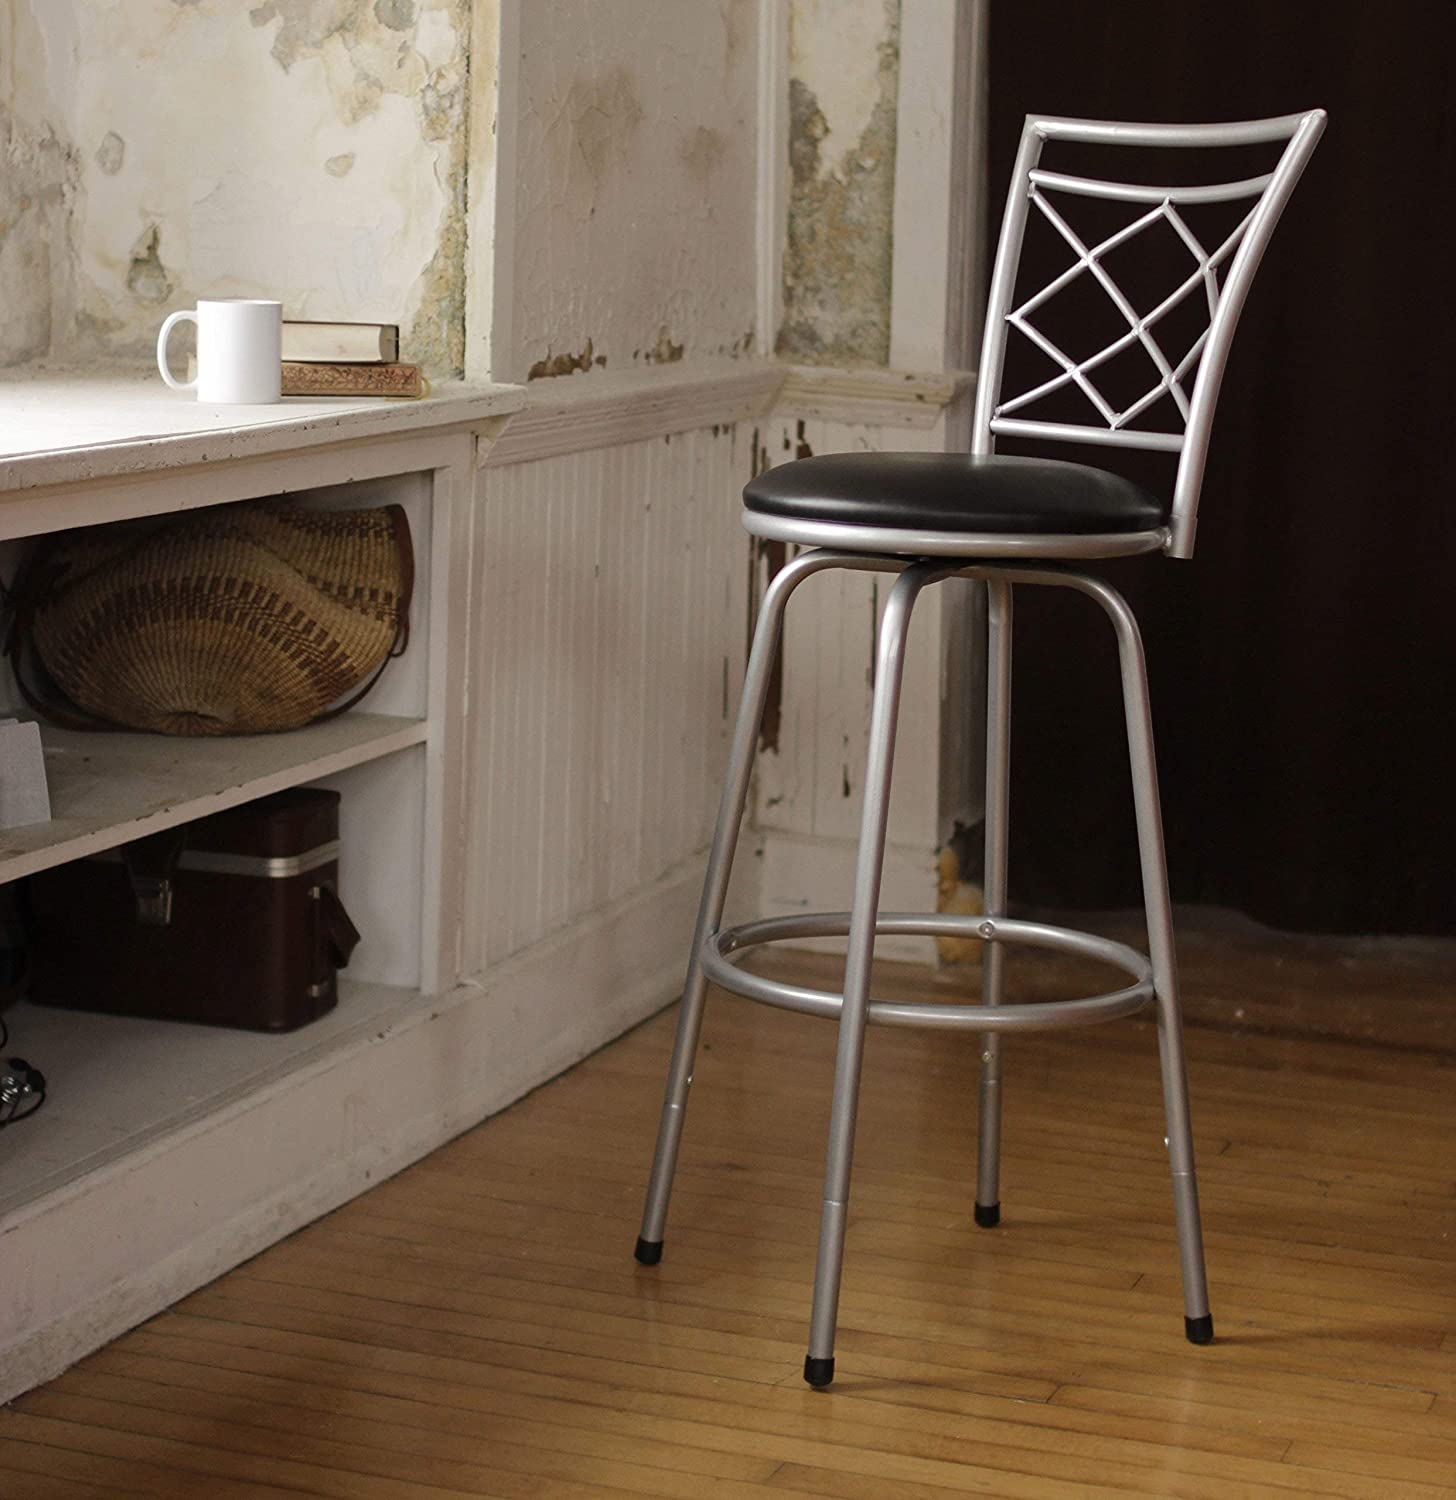 Halfy Round Seat Counter-to-Bar Height Adjustable 360 Degree Swivel Metal Bar Stool, Silver